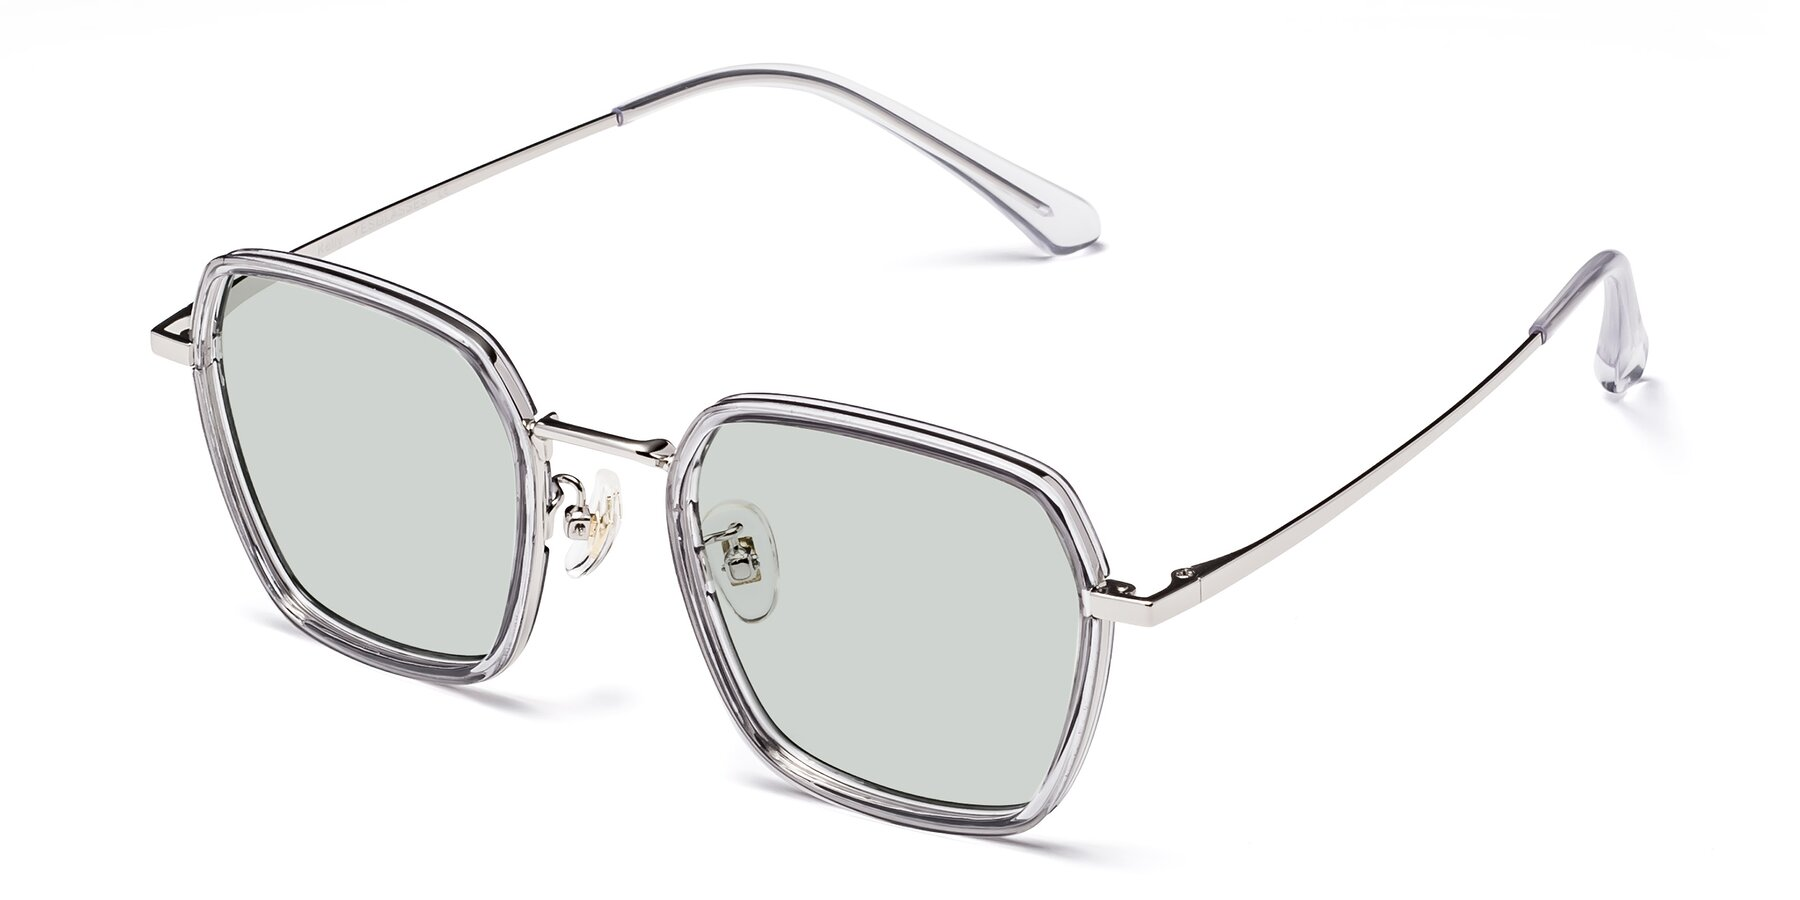 Angle of Kelly in Light Gray-Silver with Light Green Tinted Lenses